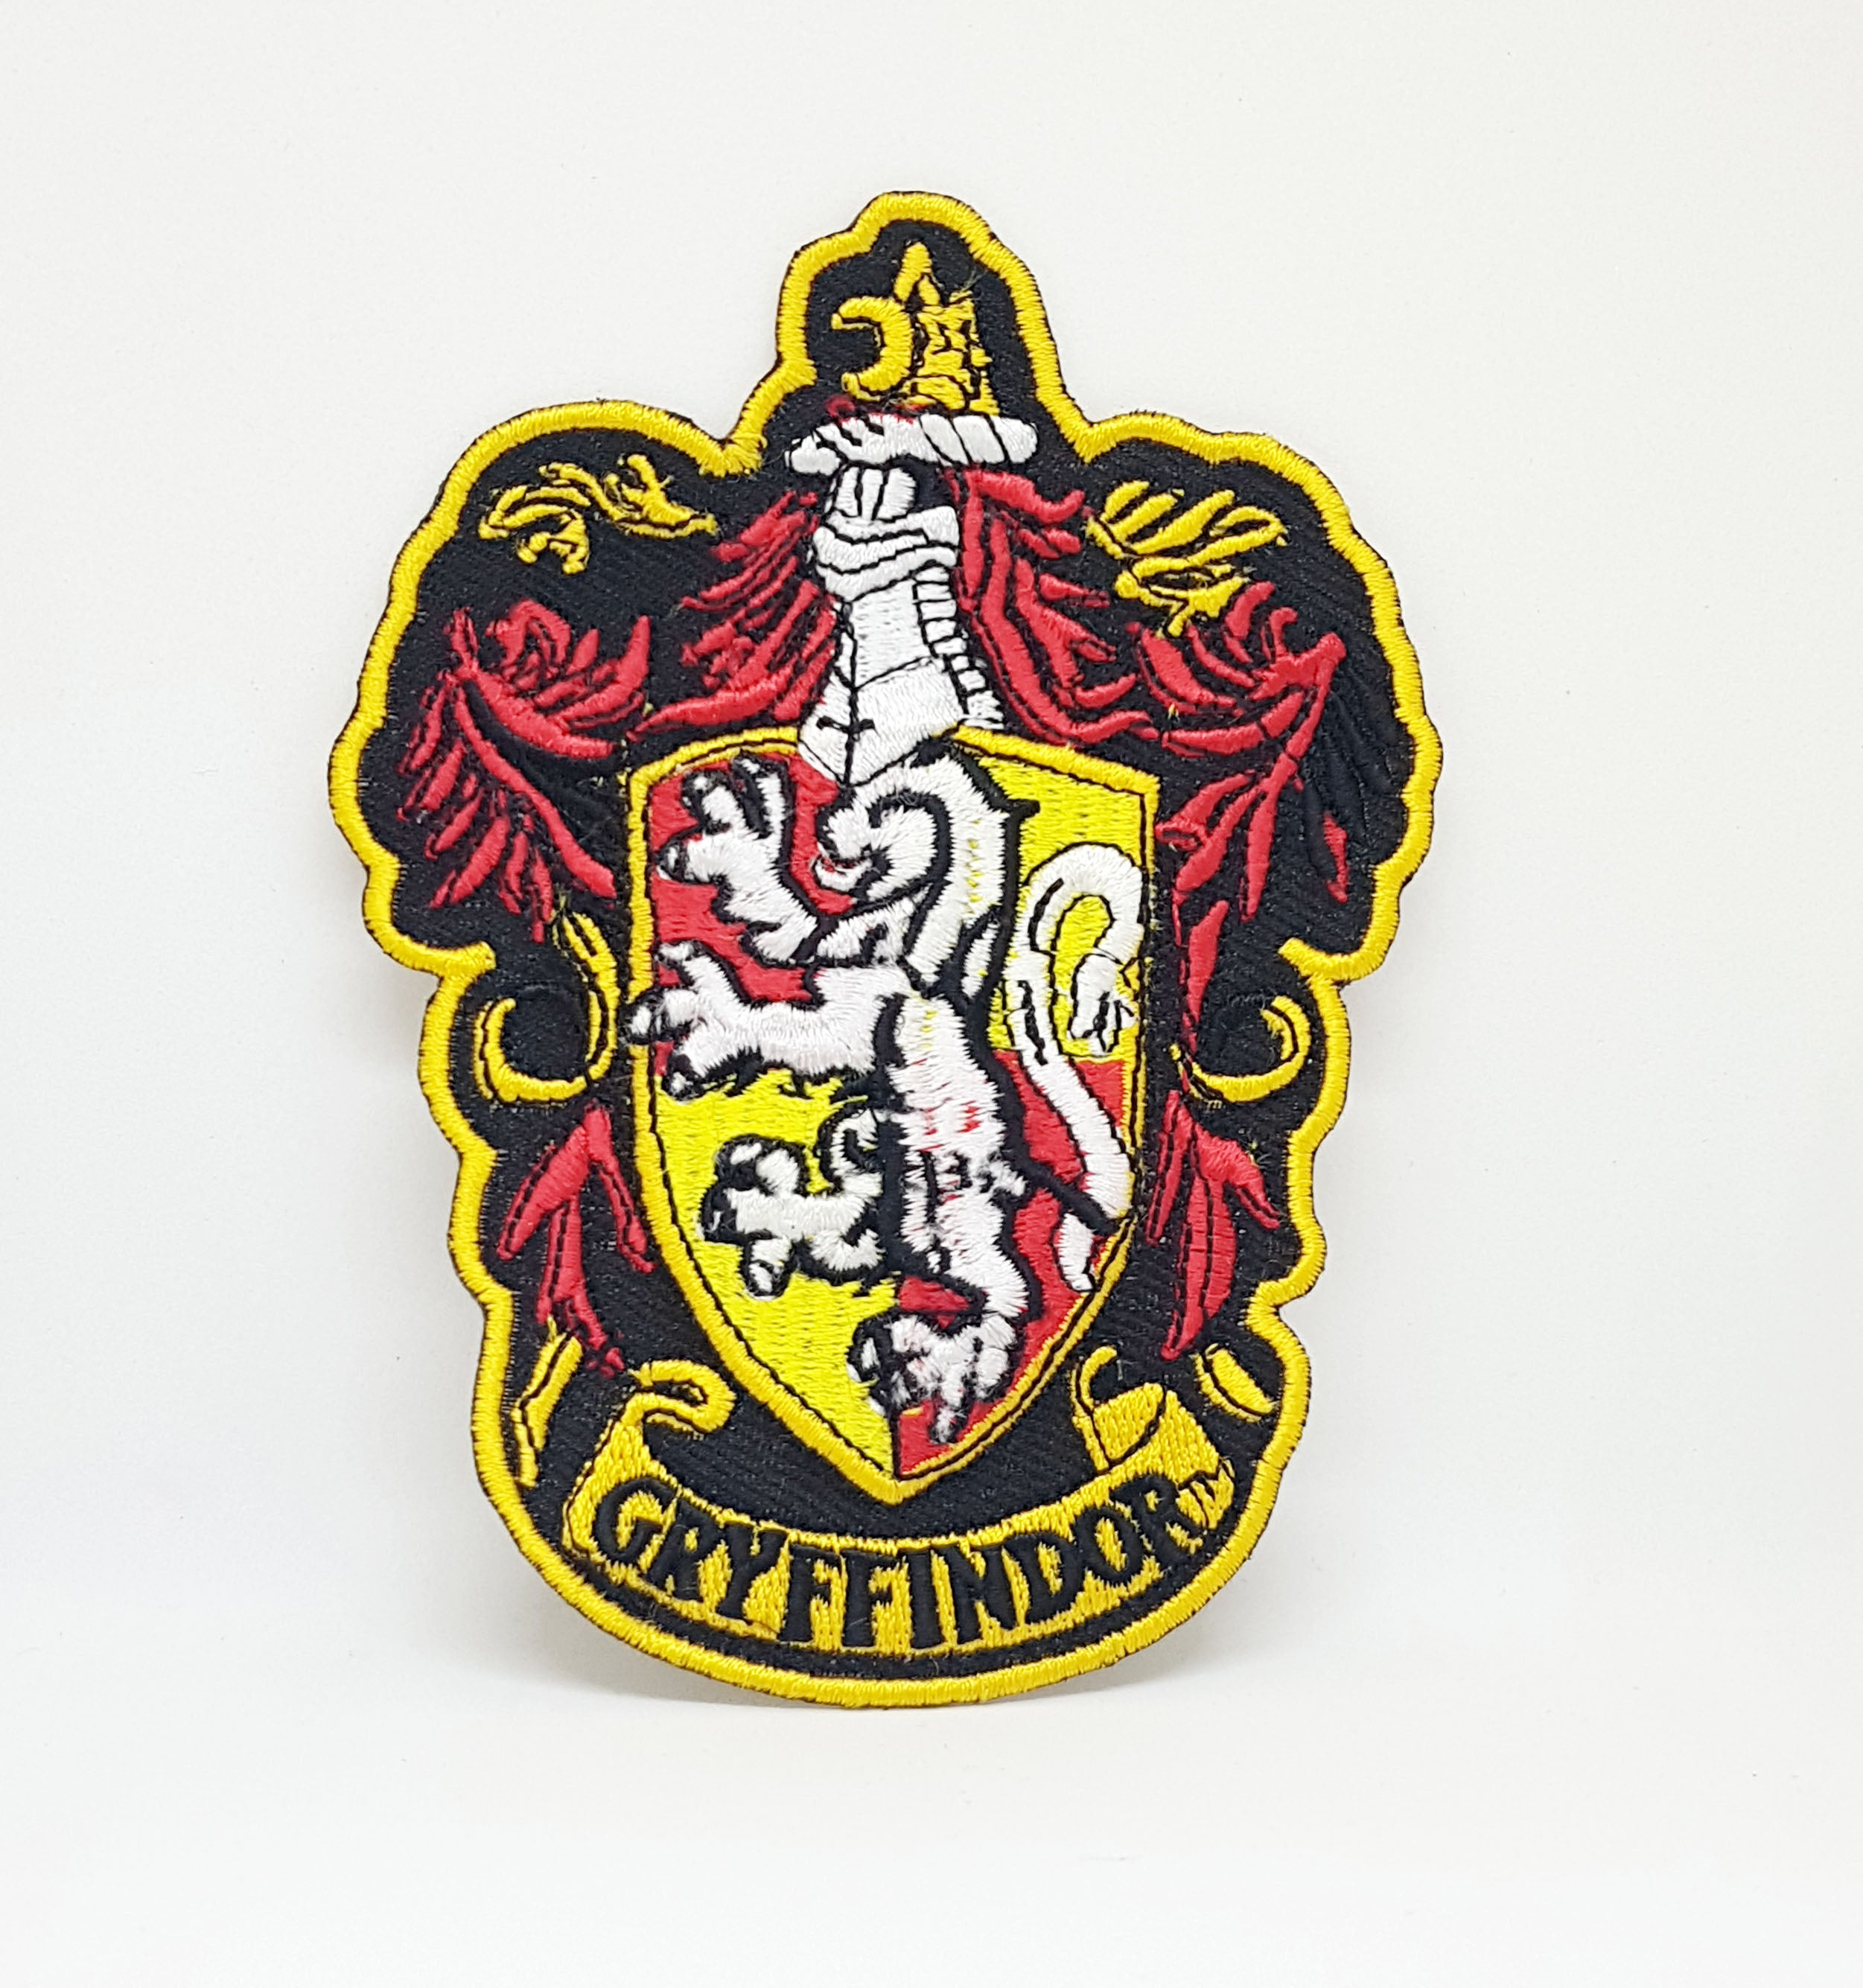 Harry Potter GRYFFINDOR Crest Iron Sew on Embroidered Patch - Patches-Badges